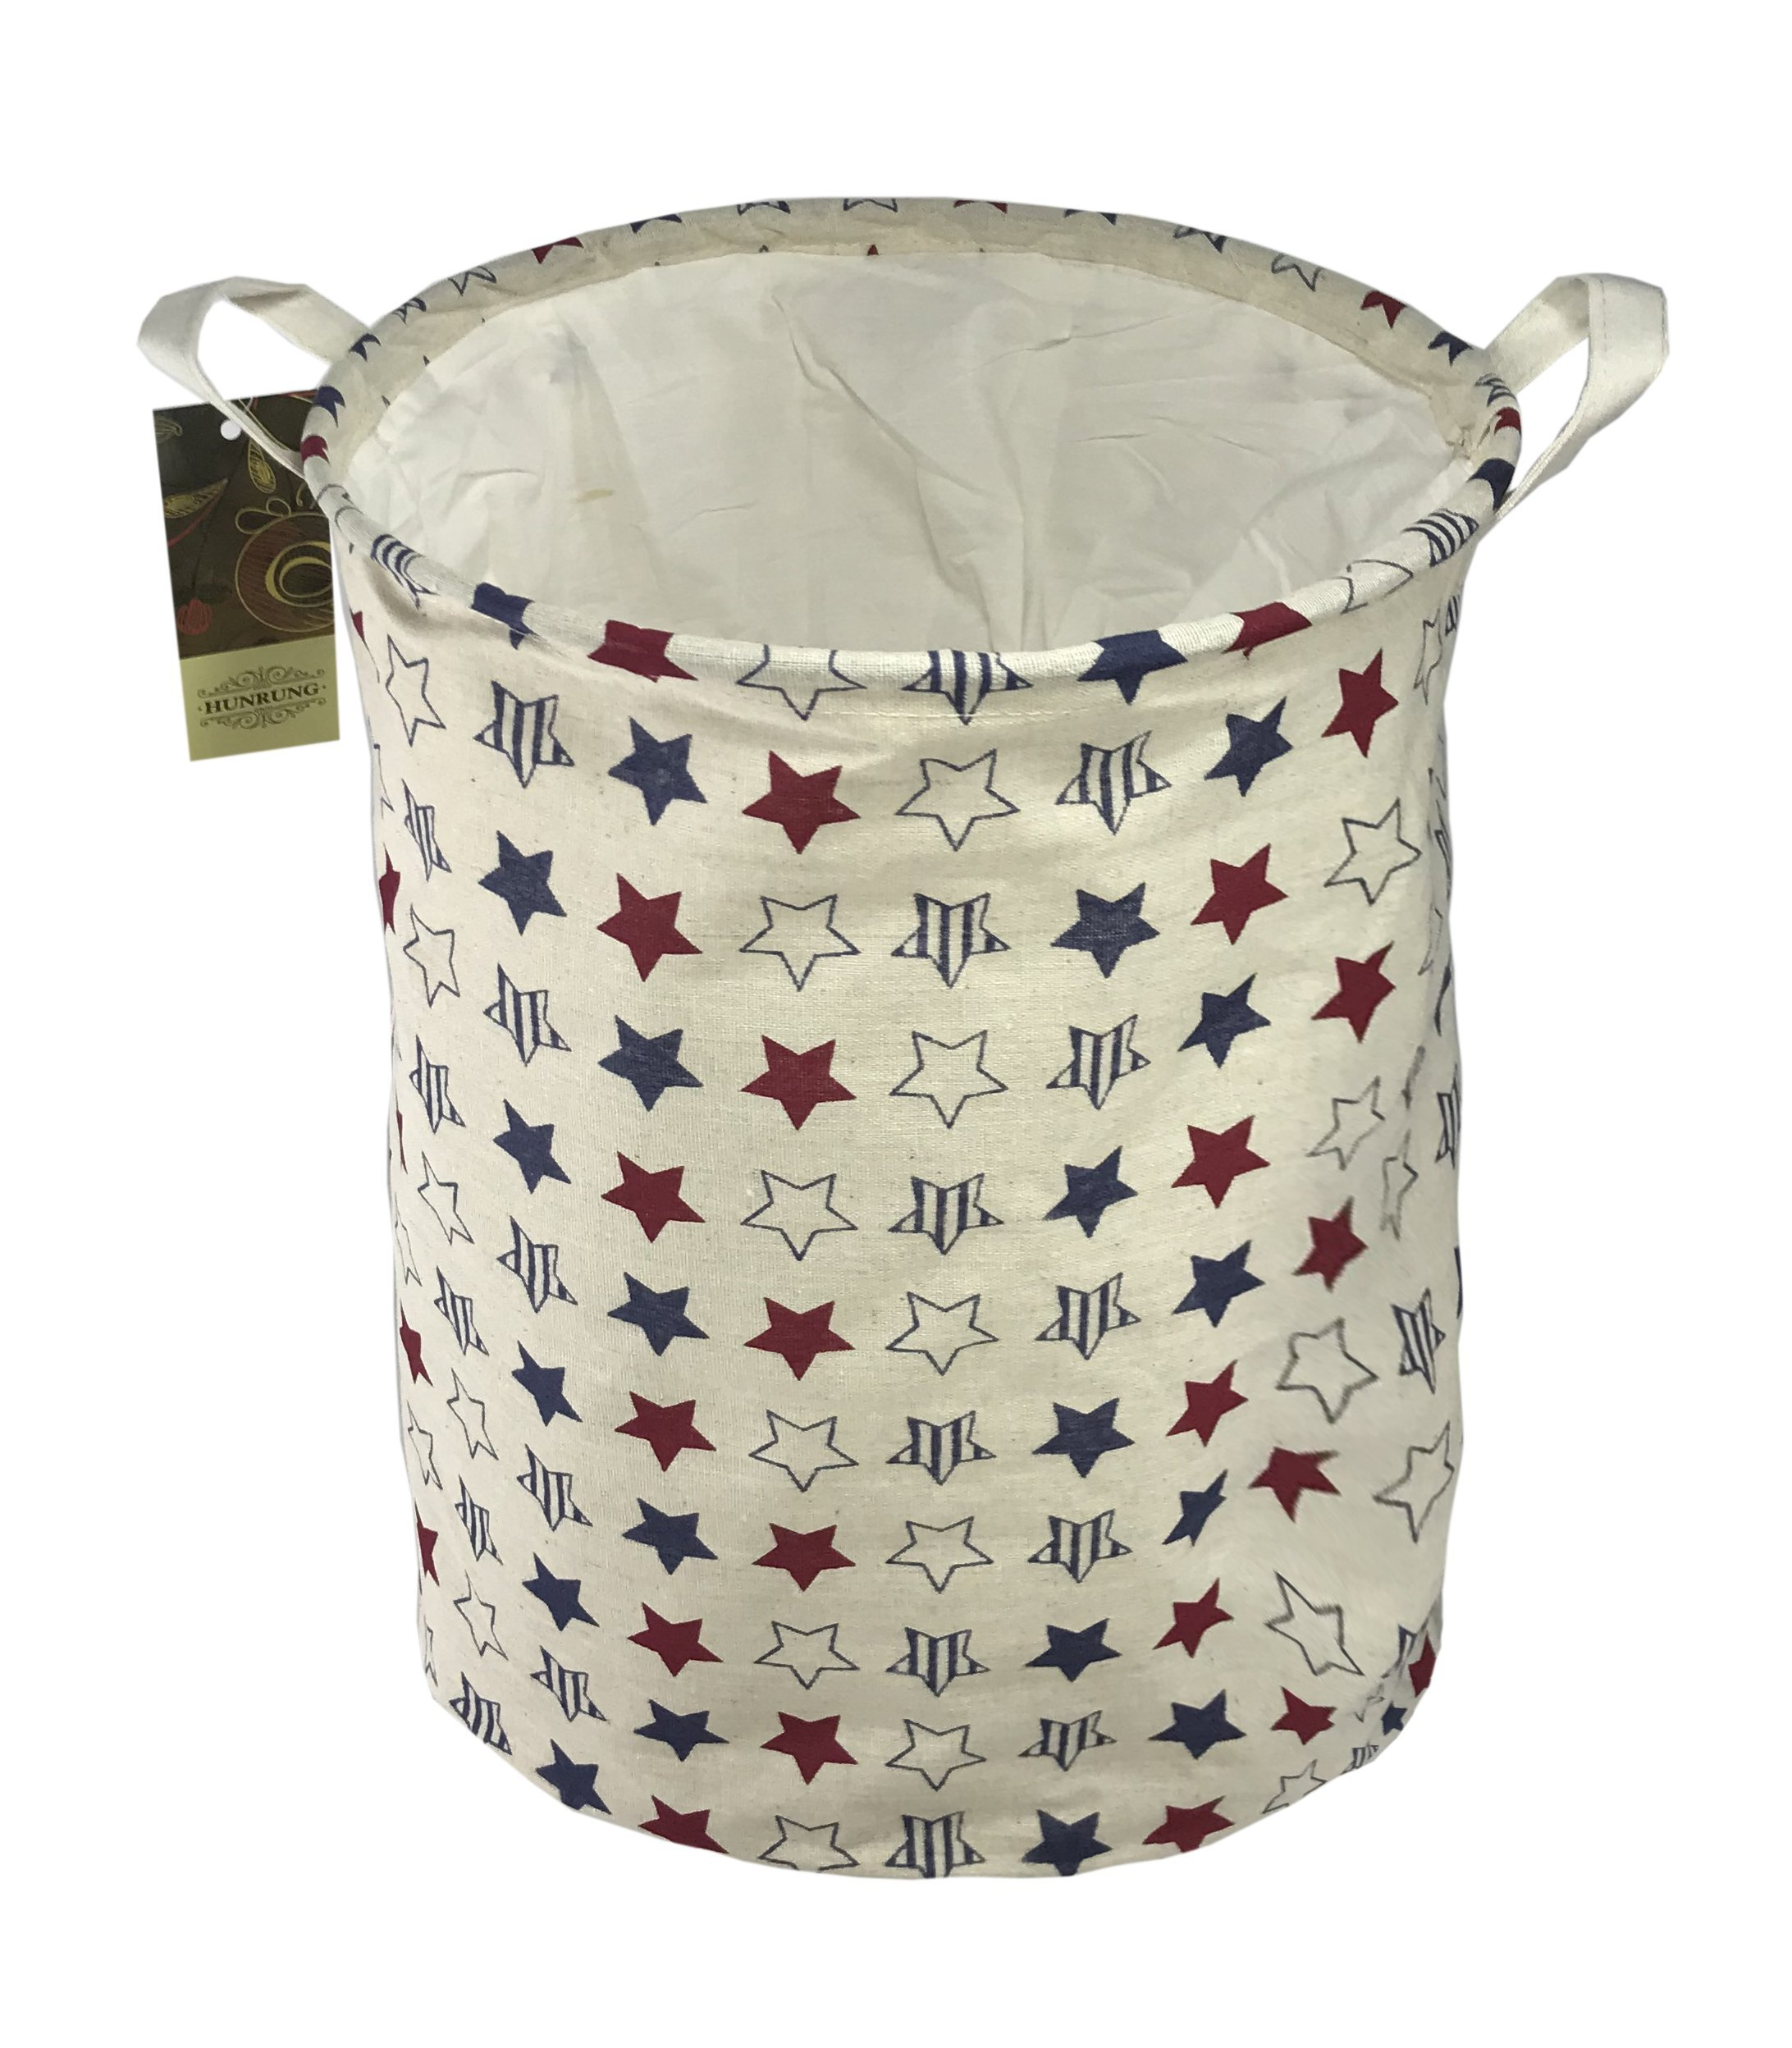 HUNRUNG Large Canvas Fabric Lightweight Drawstring Storage Basket/Toy Organizer/Dirty clothes Collapsible Waterproof for College Dorms, Kids Bedroom,Bathroom,Laundry Hamper(Drawsting star)